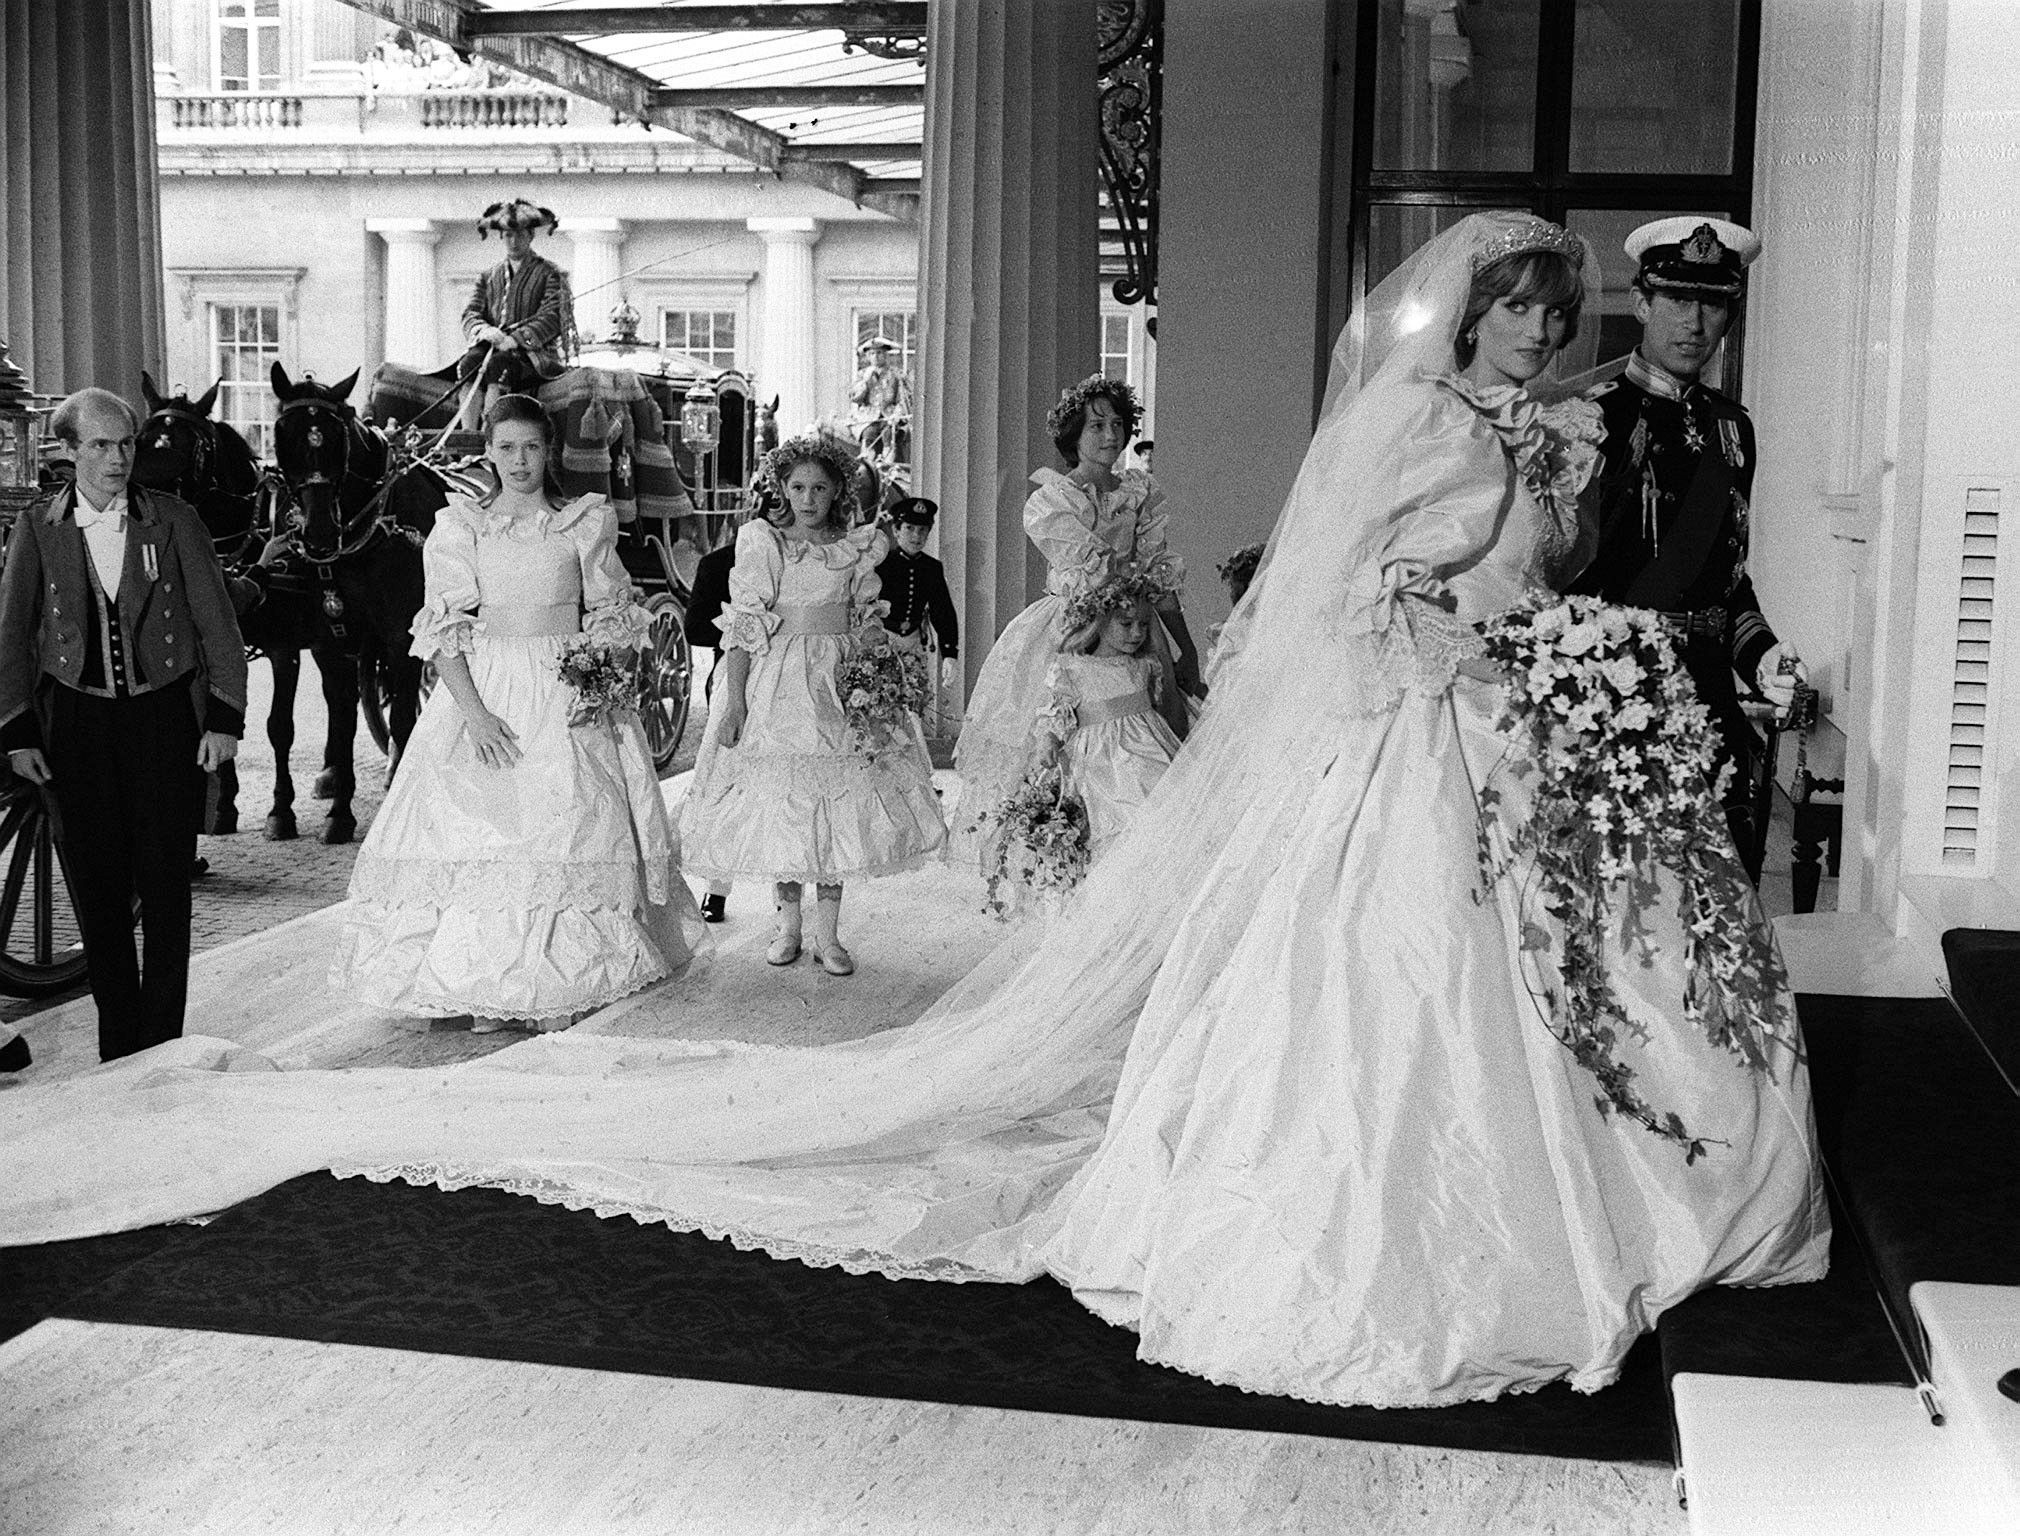 Princess Diana Had a Second Wedding Dress That She Never